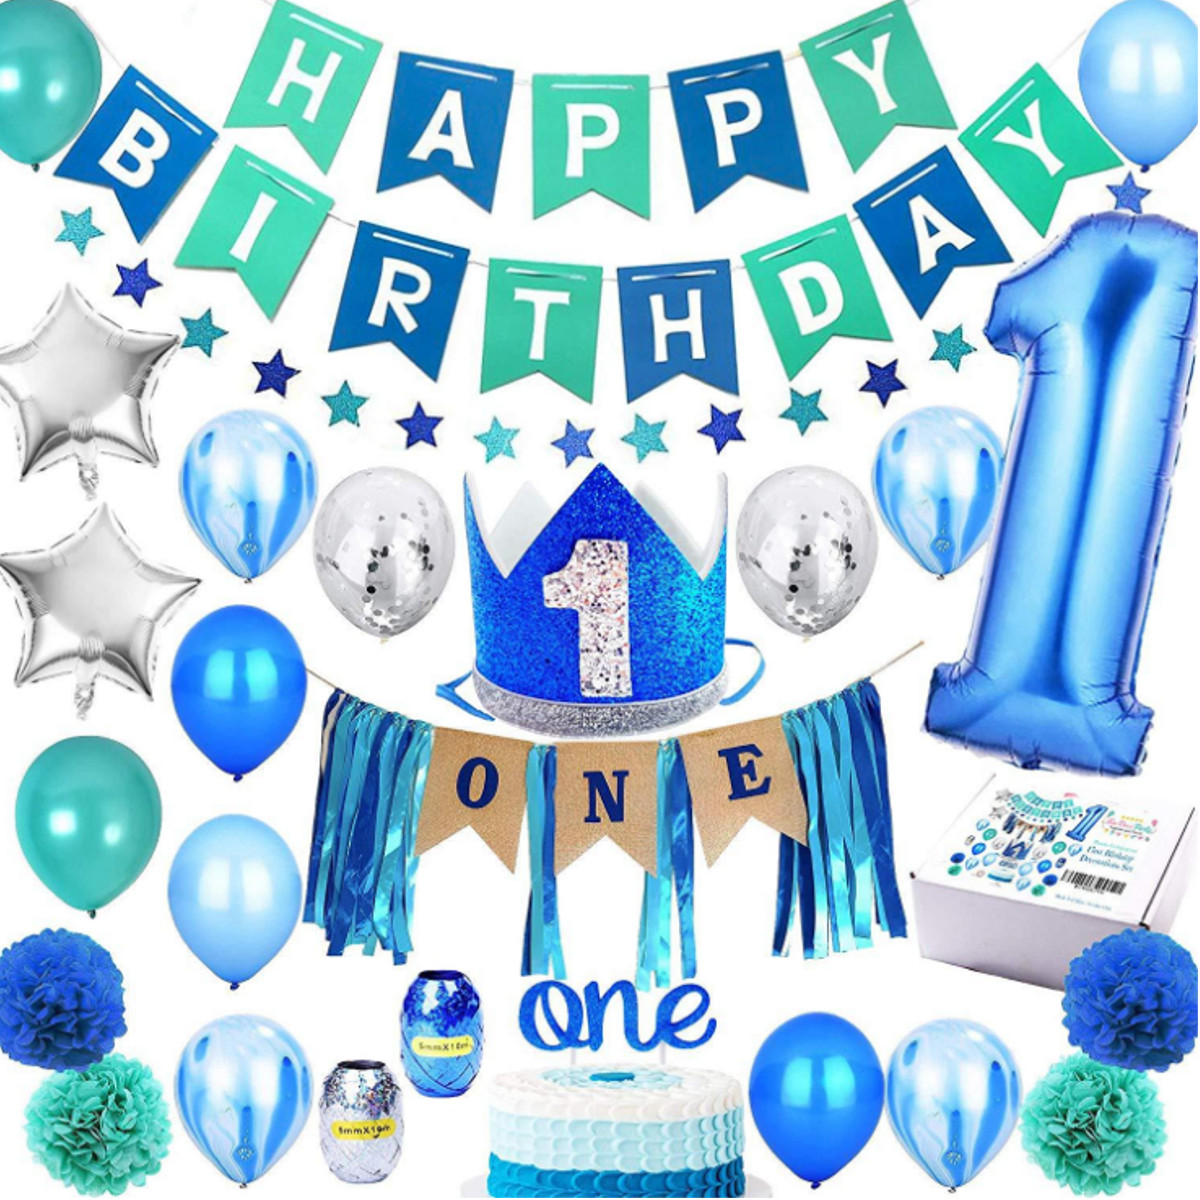 1x 9 Today Happy Birthday Foil Party Banner.